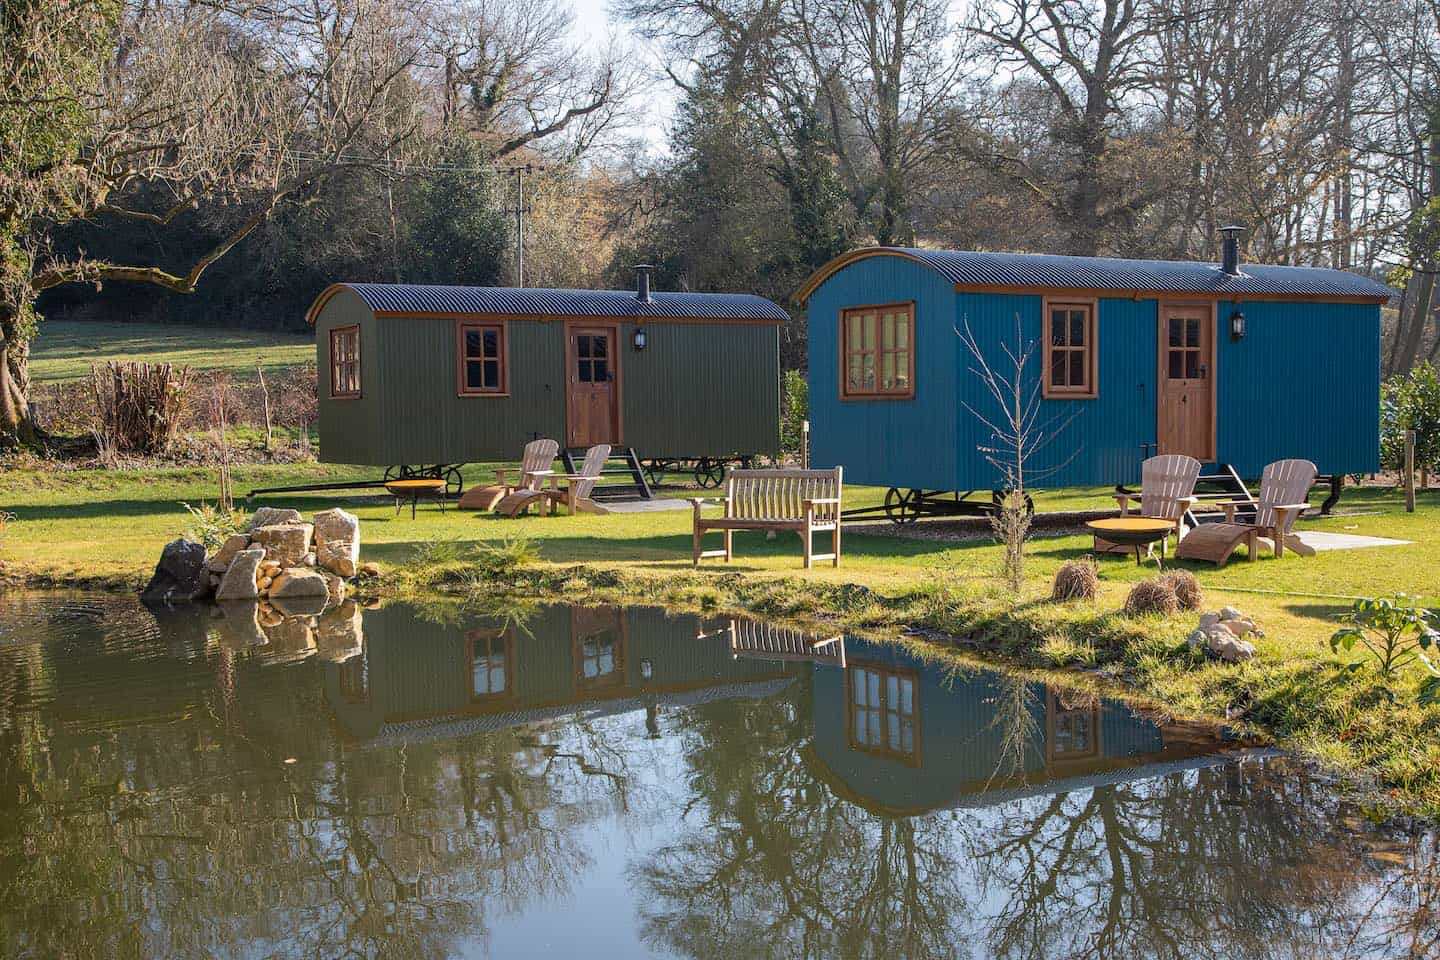 Dog-Friendly Holidays in the UK - Top Trends For 2021 - Merry Harriers Shepherds Huts